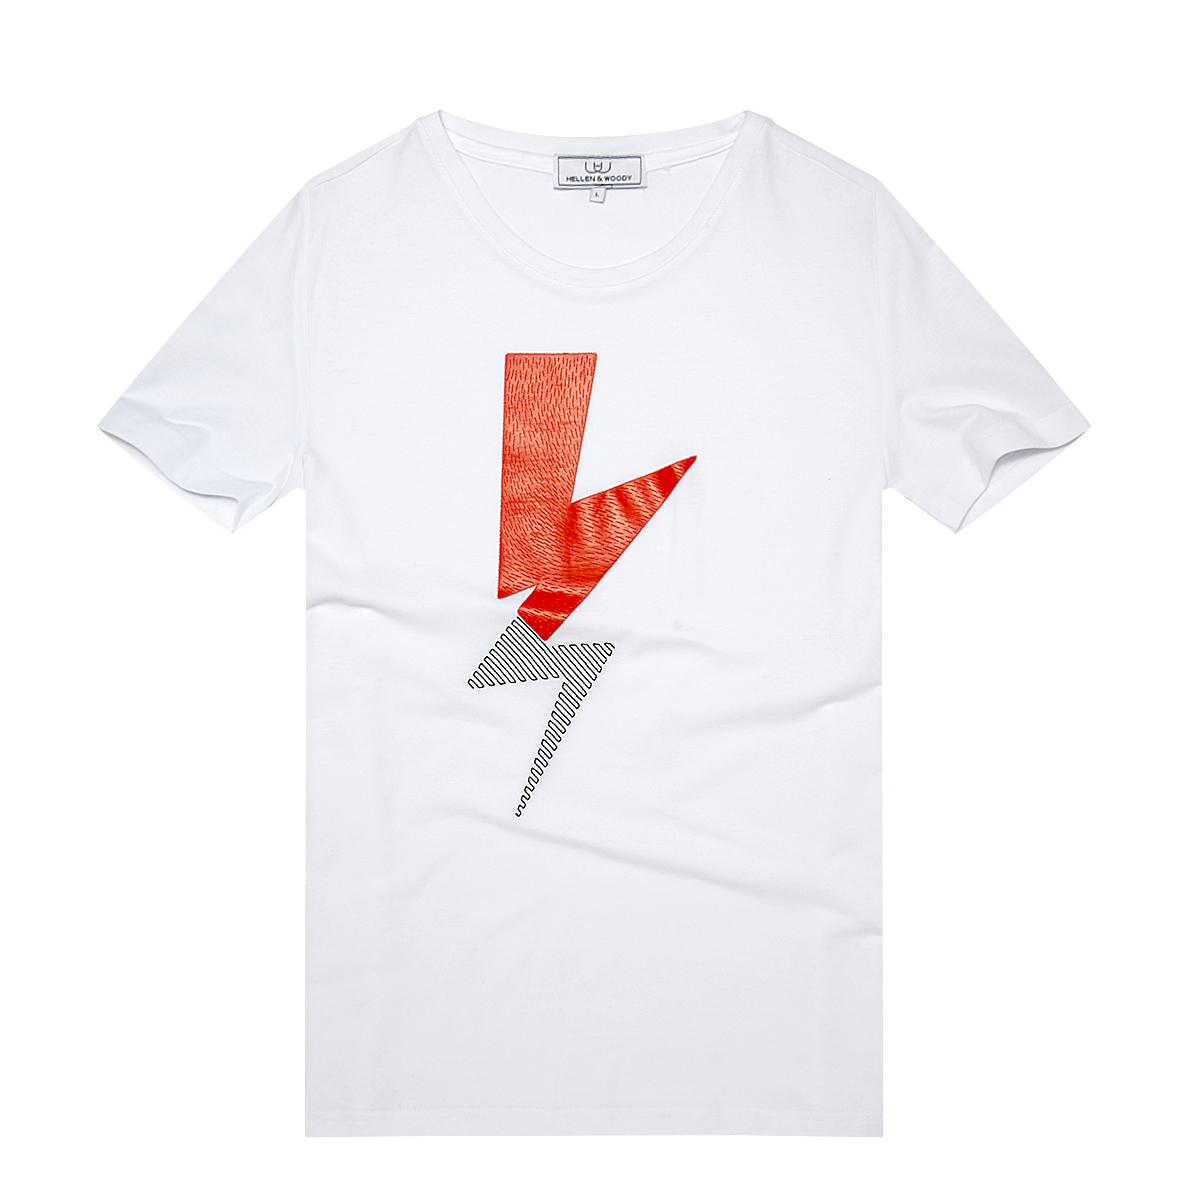 HELLEN&WOODY/H&W Three-dimensional Lightning Design T Shirts Mens Fahion Short-Sleeve Printed T-shirt in White Black 1705